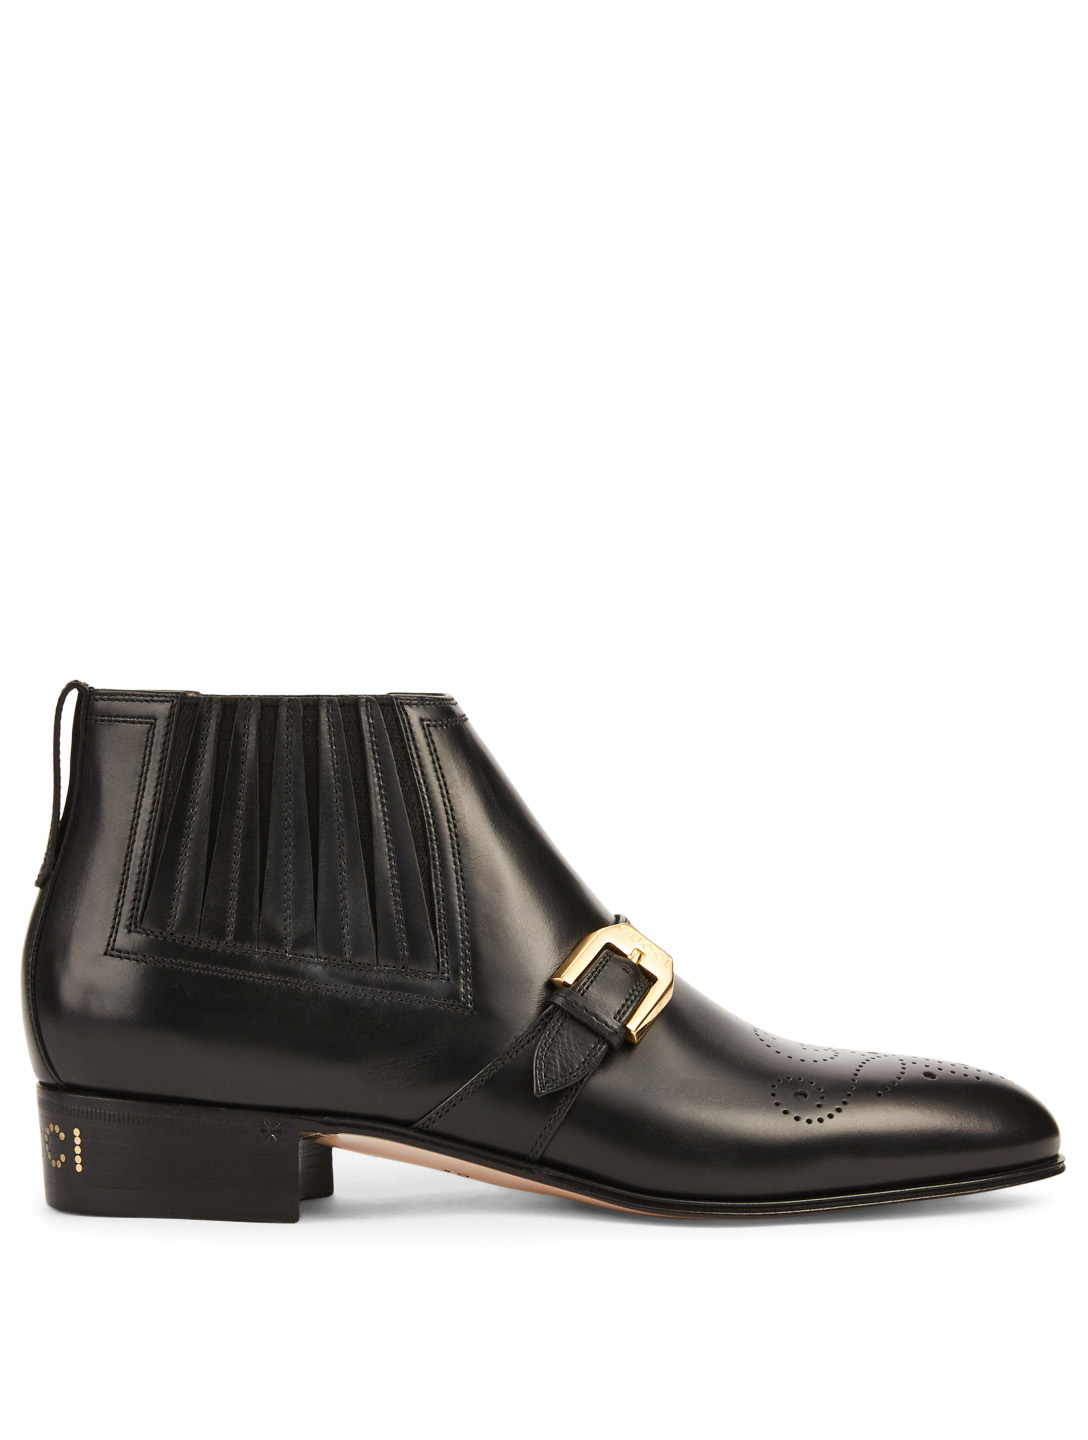 59401bd8b GUCCI Leather Ankle Boots With G Brogue Women's Black ...